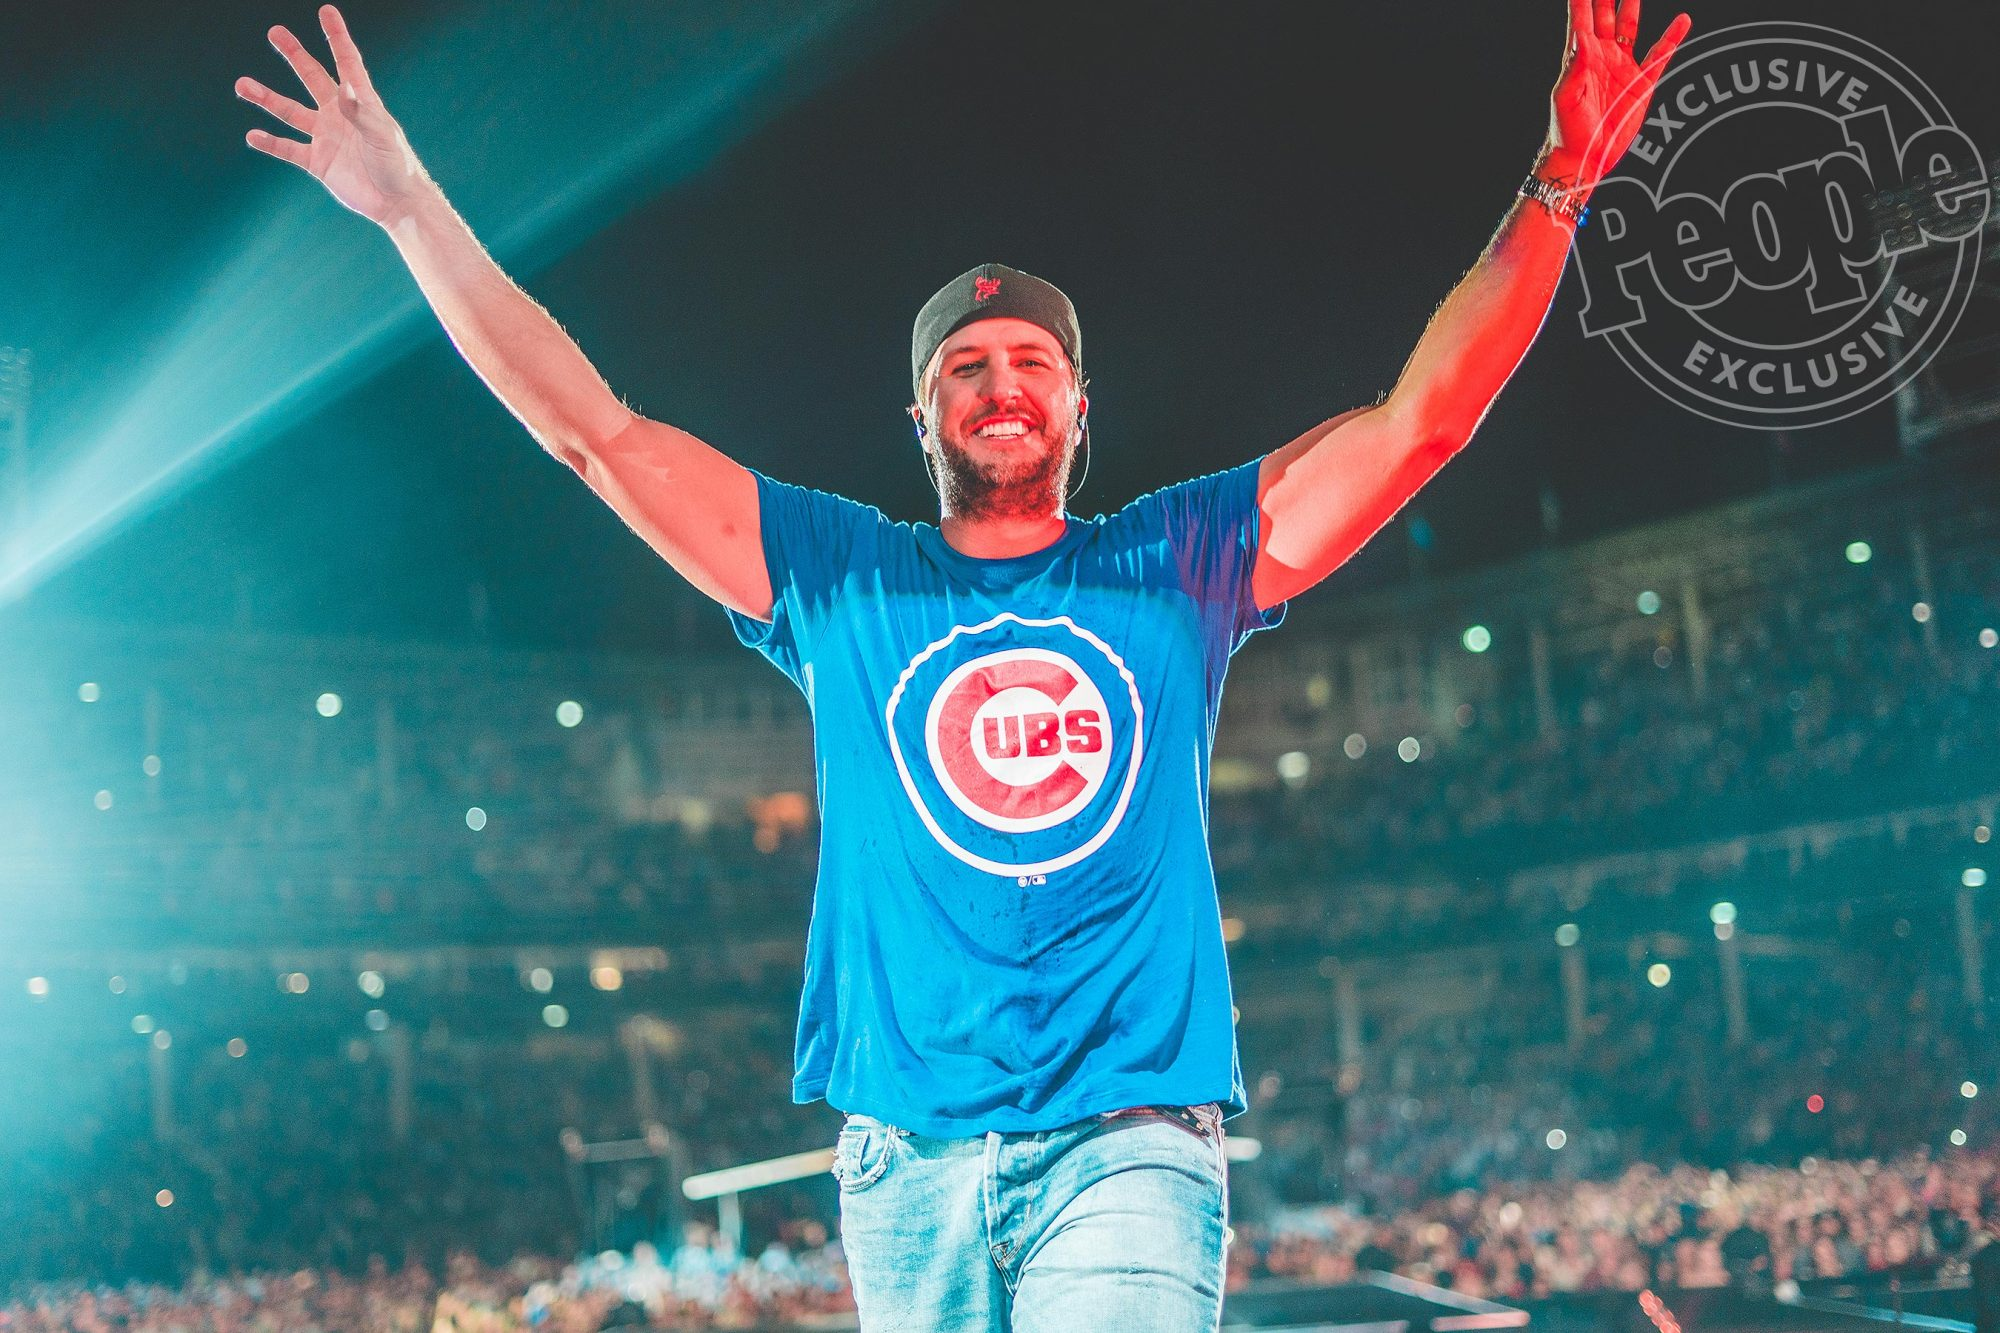 Luke BryanCredit: Ethan Helms